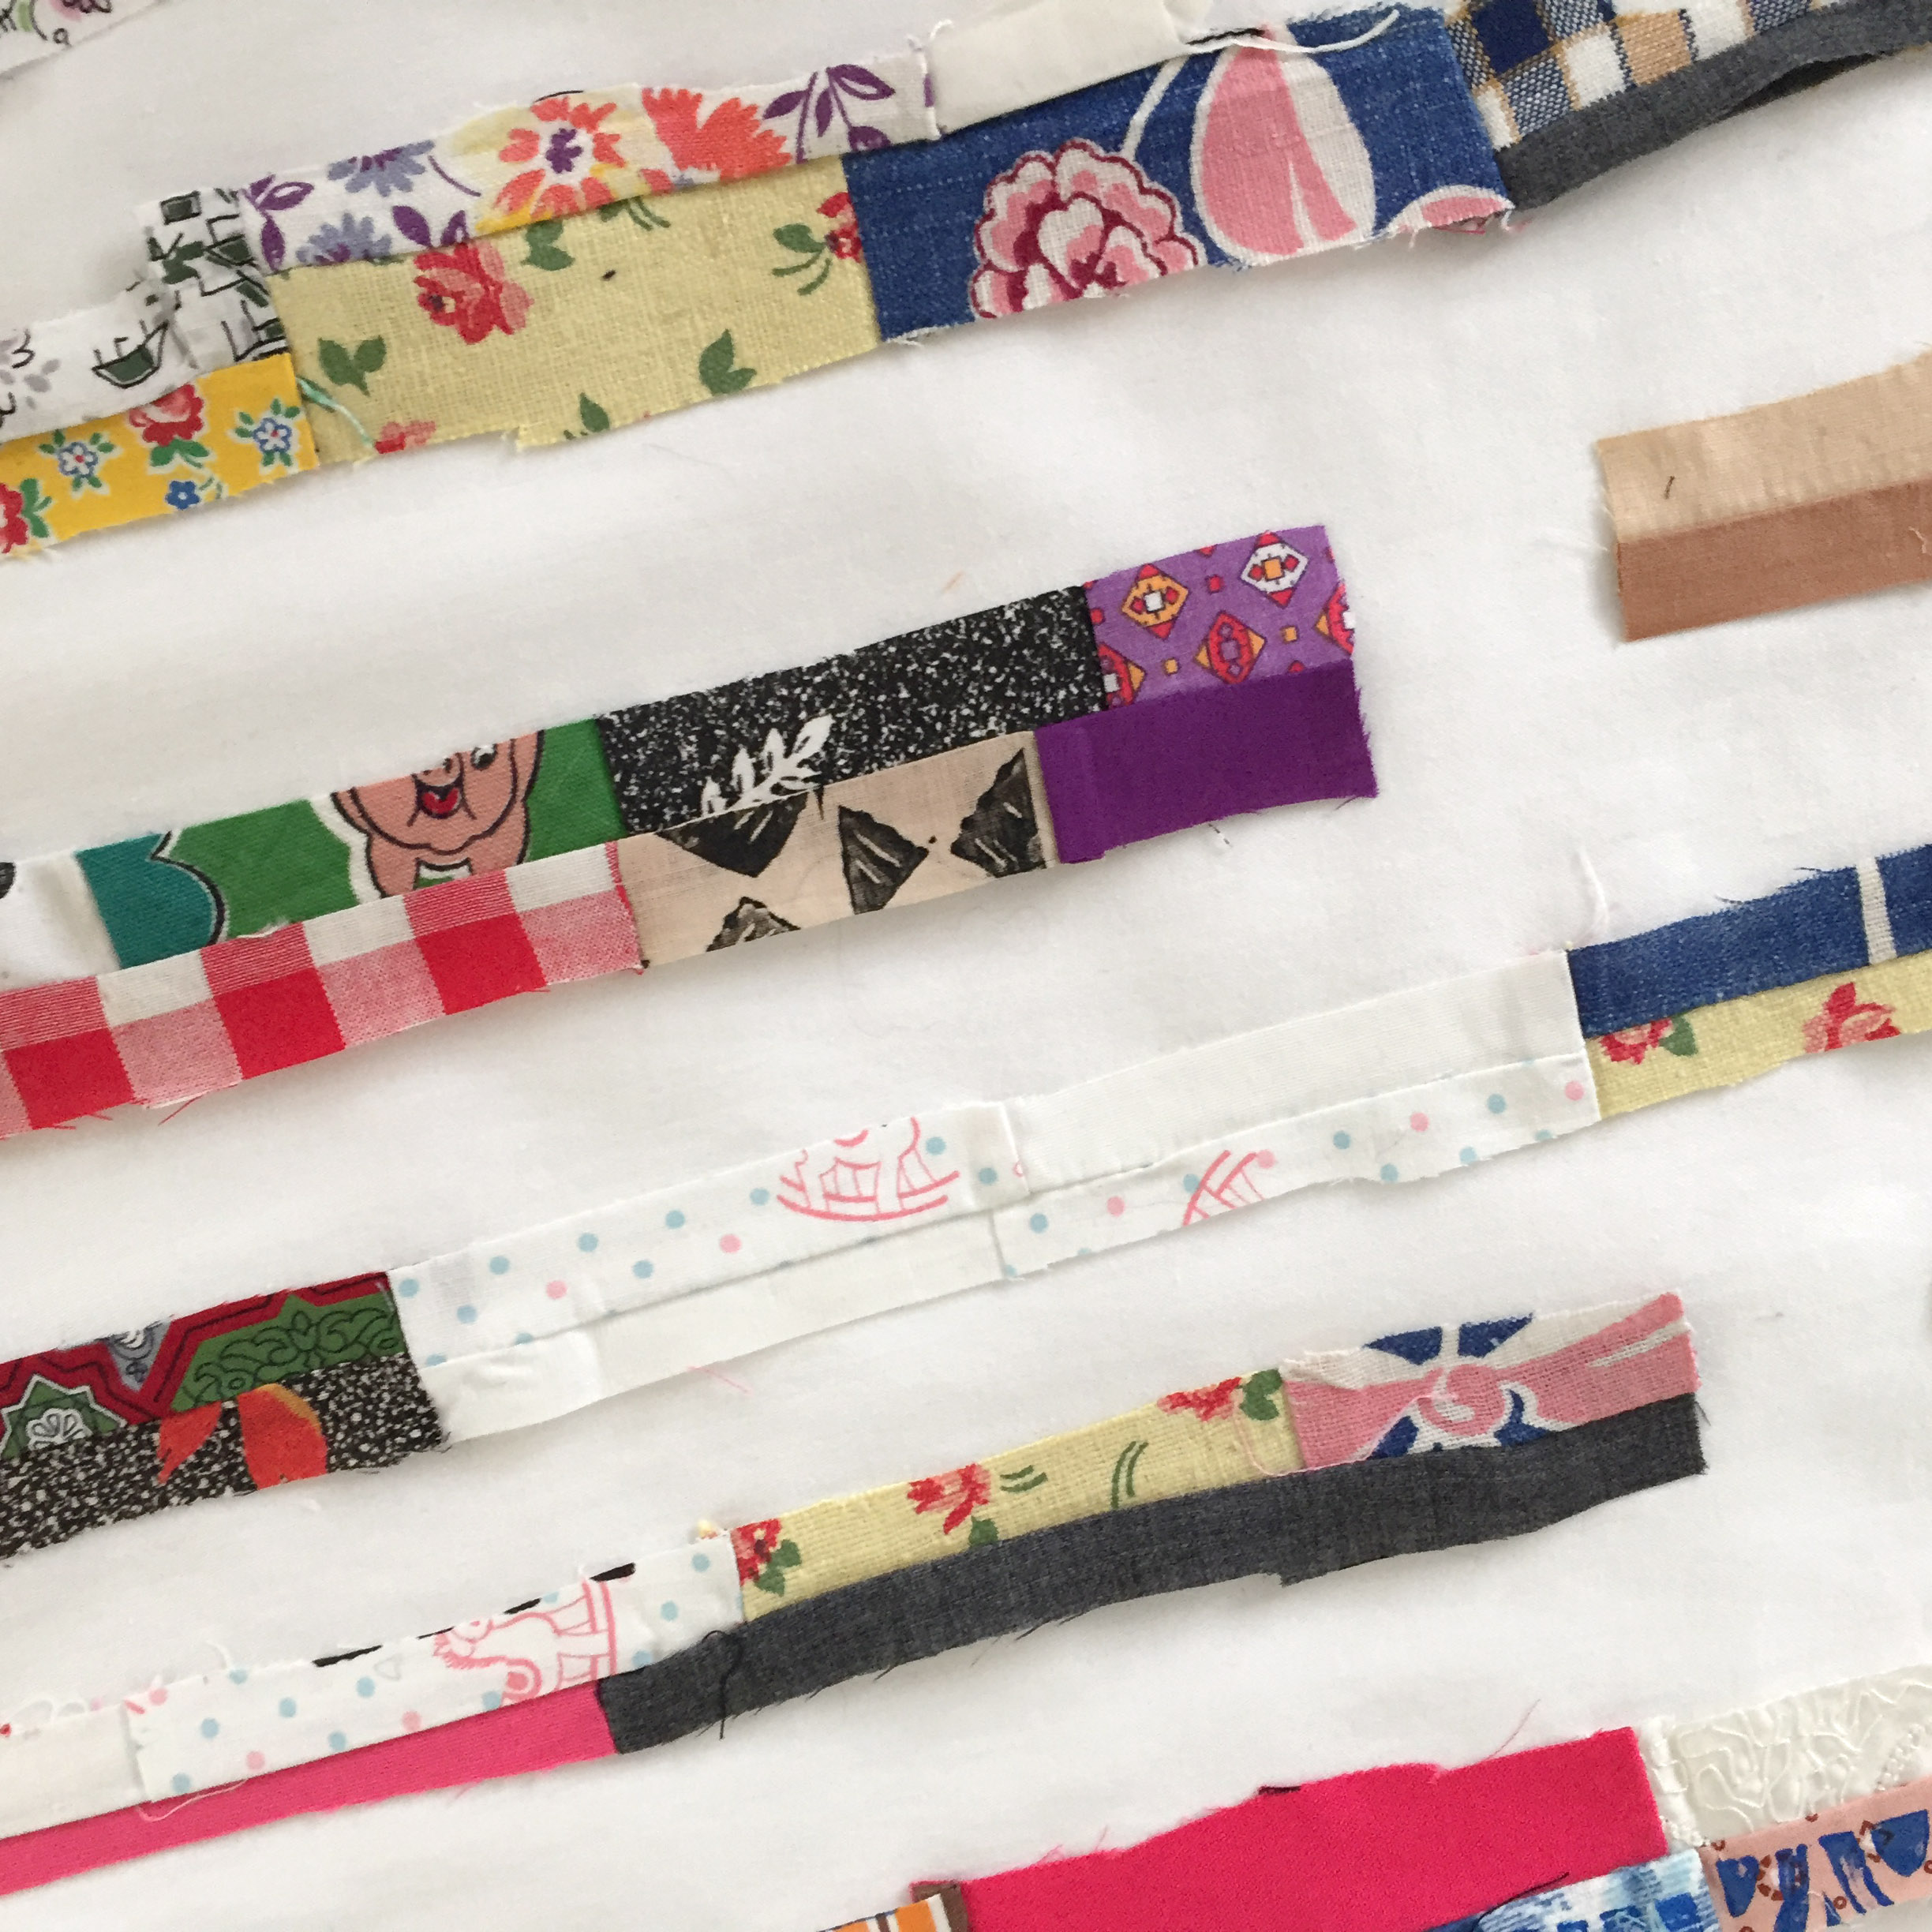 strips_detail.jpg